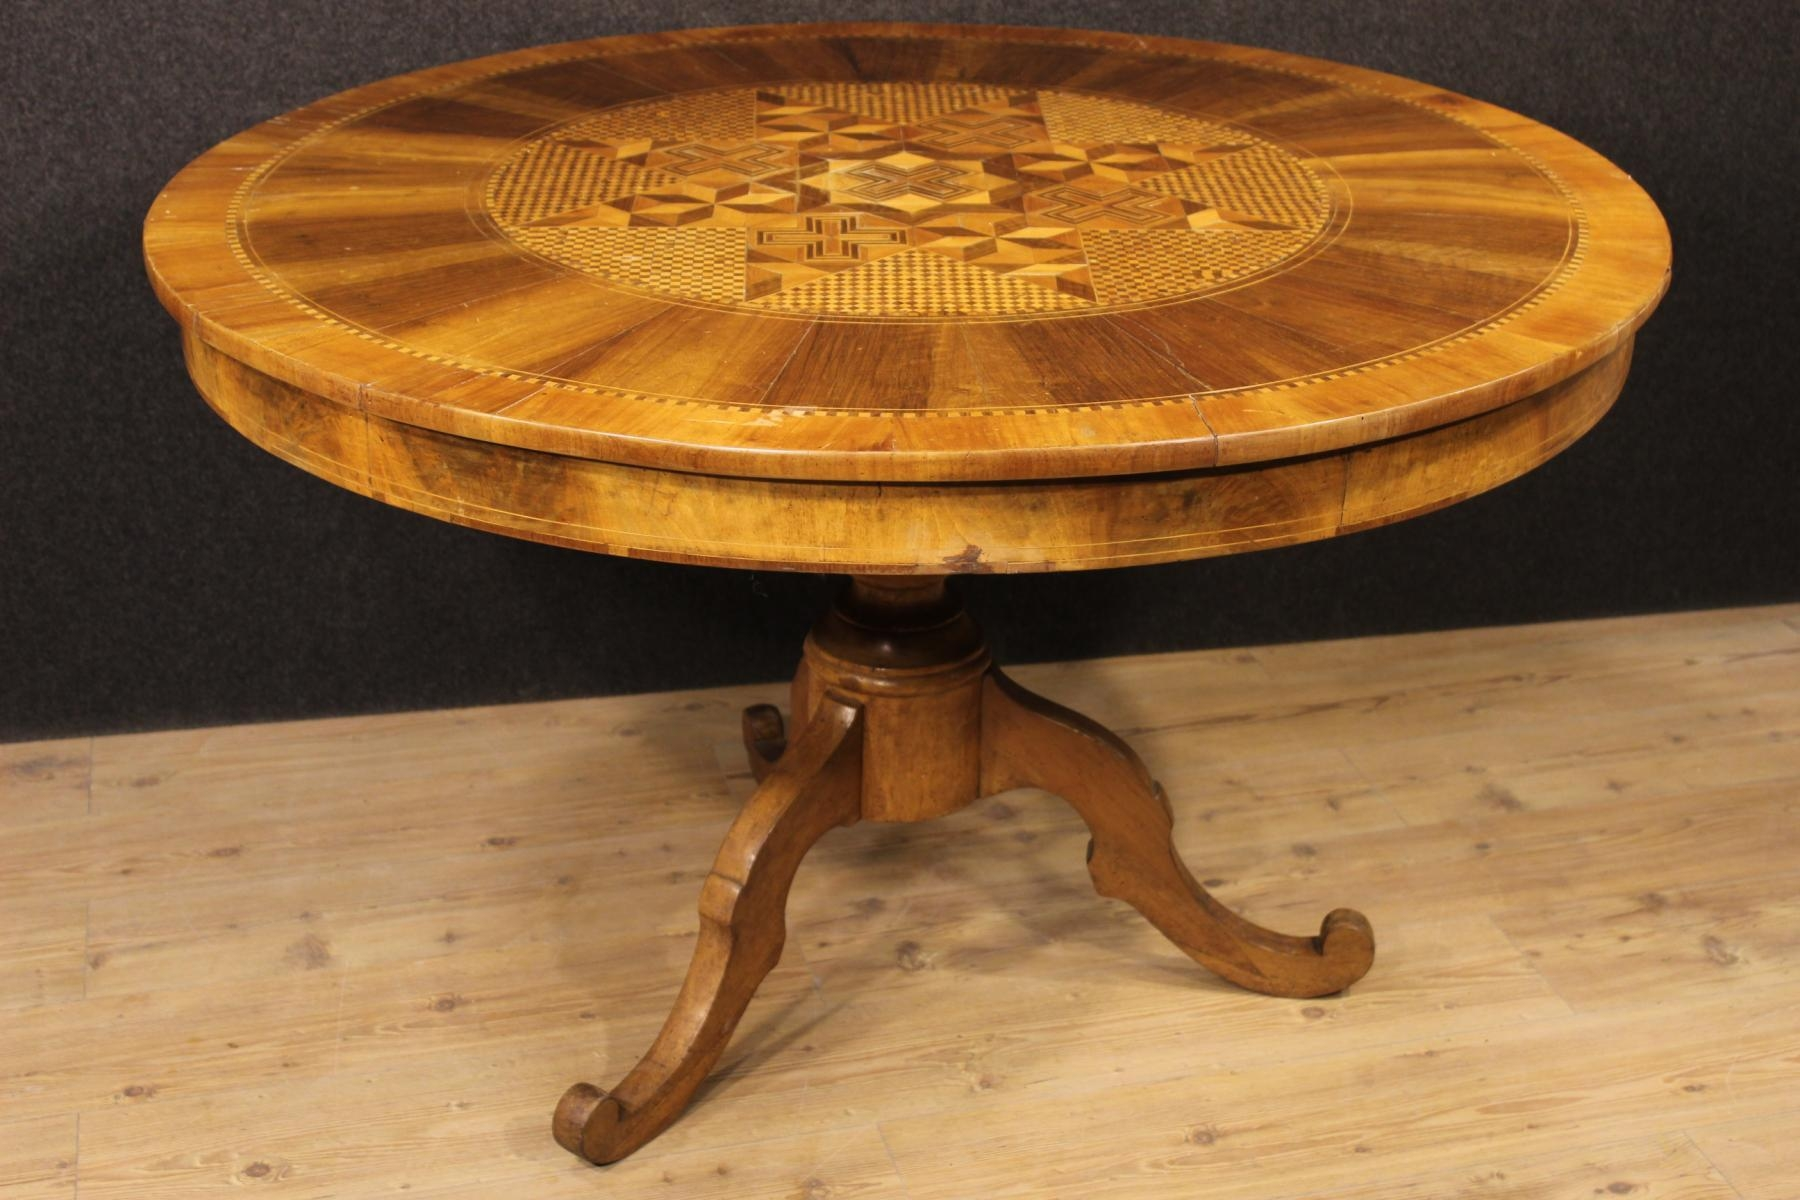 Antique Italian Carved Table With Inlaid Wood For Sale At Pamono With Regard To Italian Inlaid Wood Wall Art (View 11 of 20)